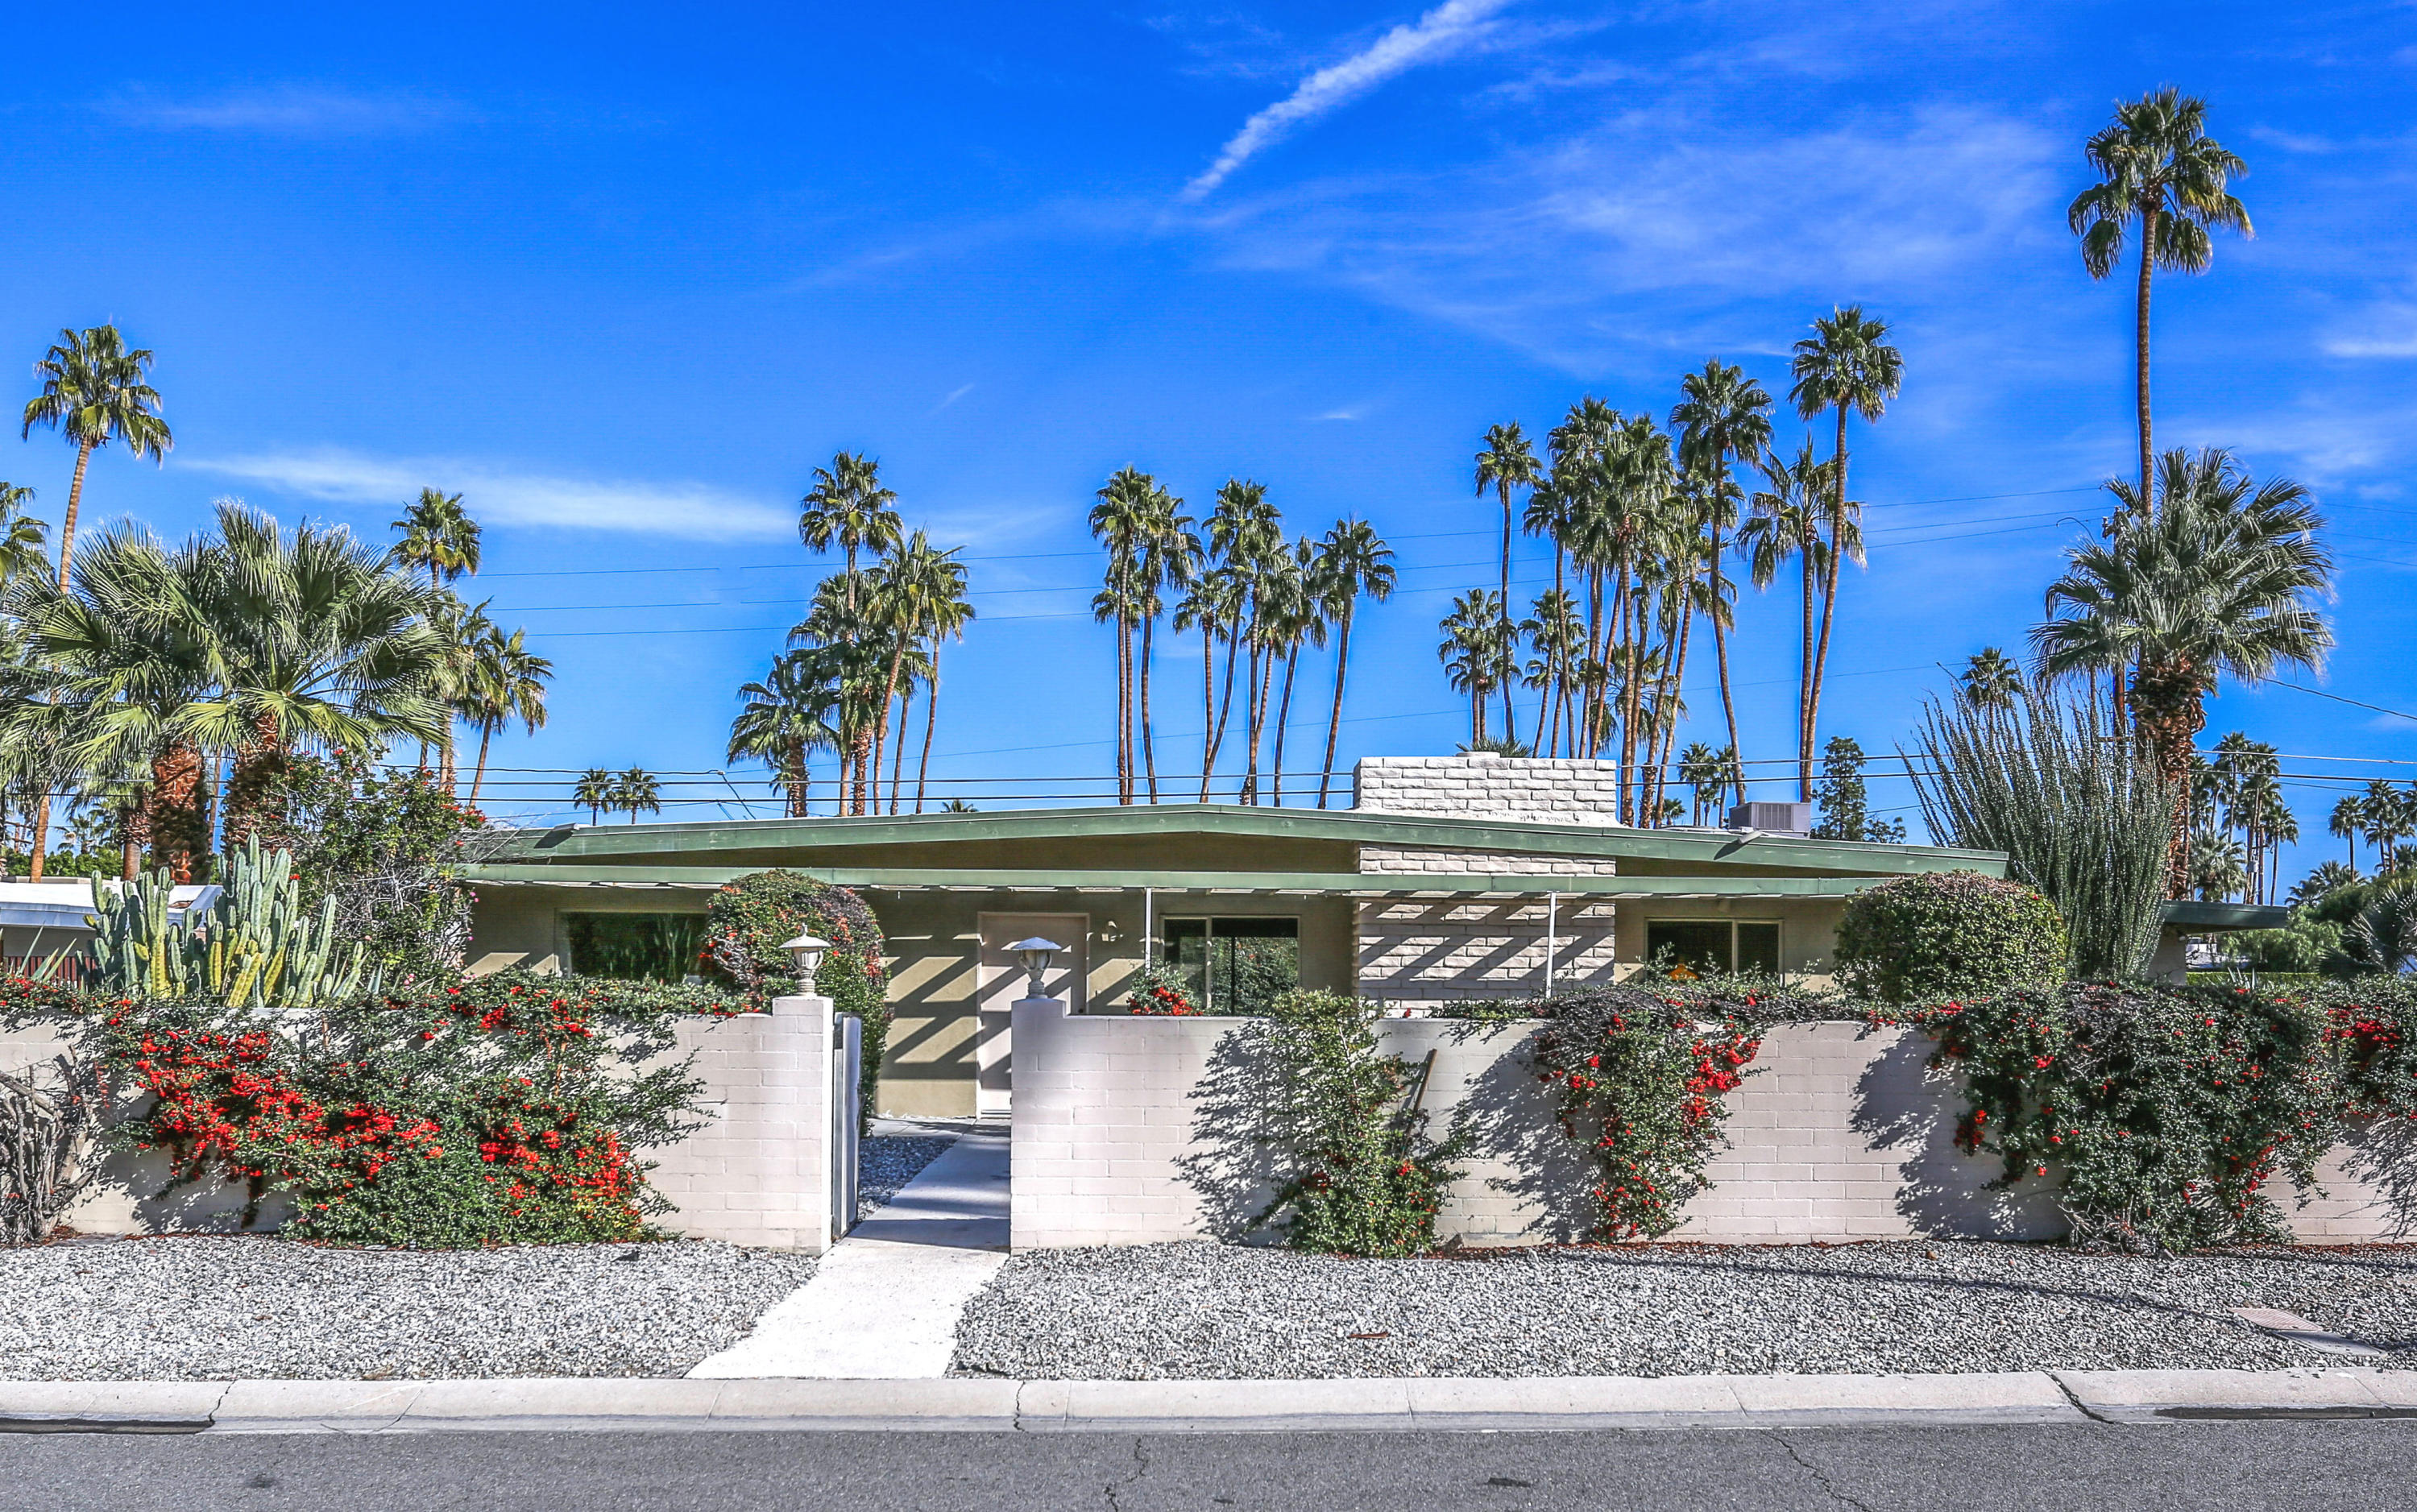 1552 Sagebrush Road, Palm Springs, California 92264, 2 Bedrooms Bedrooms, ,2 BathroomsBathrooms,Residential,For Sale,1552 Sagebrush Road,219037429